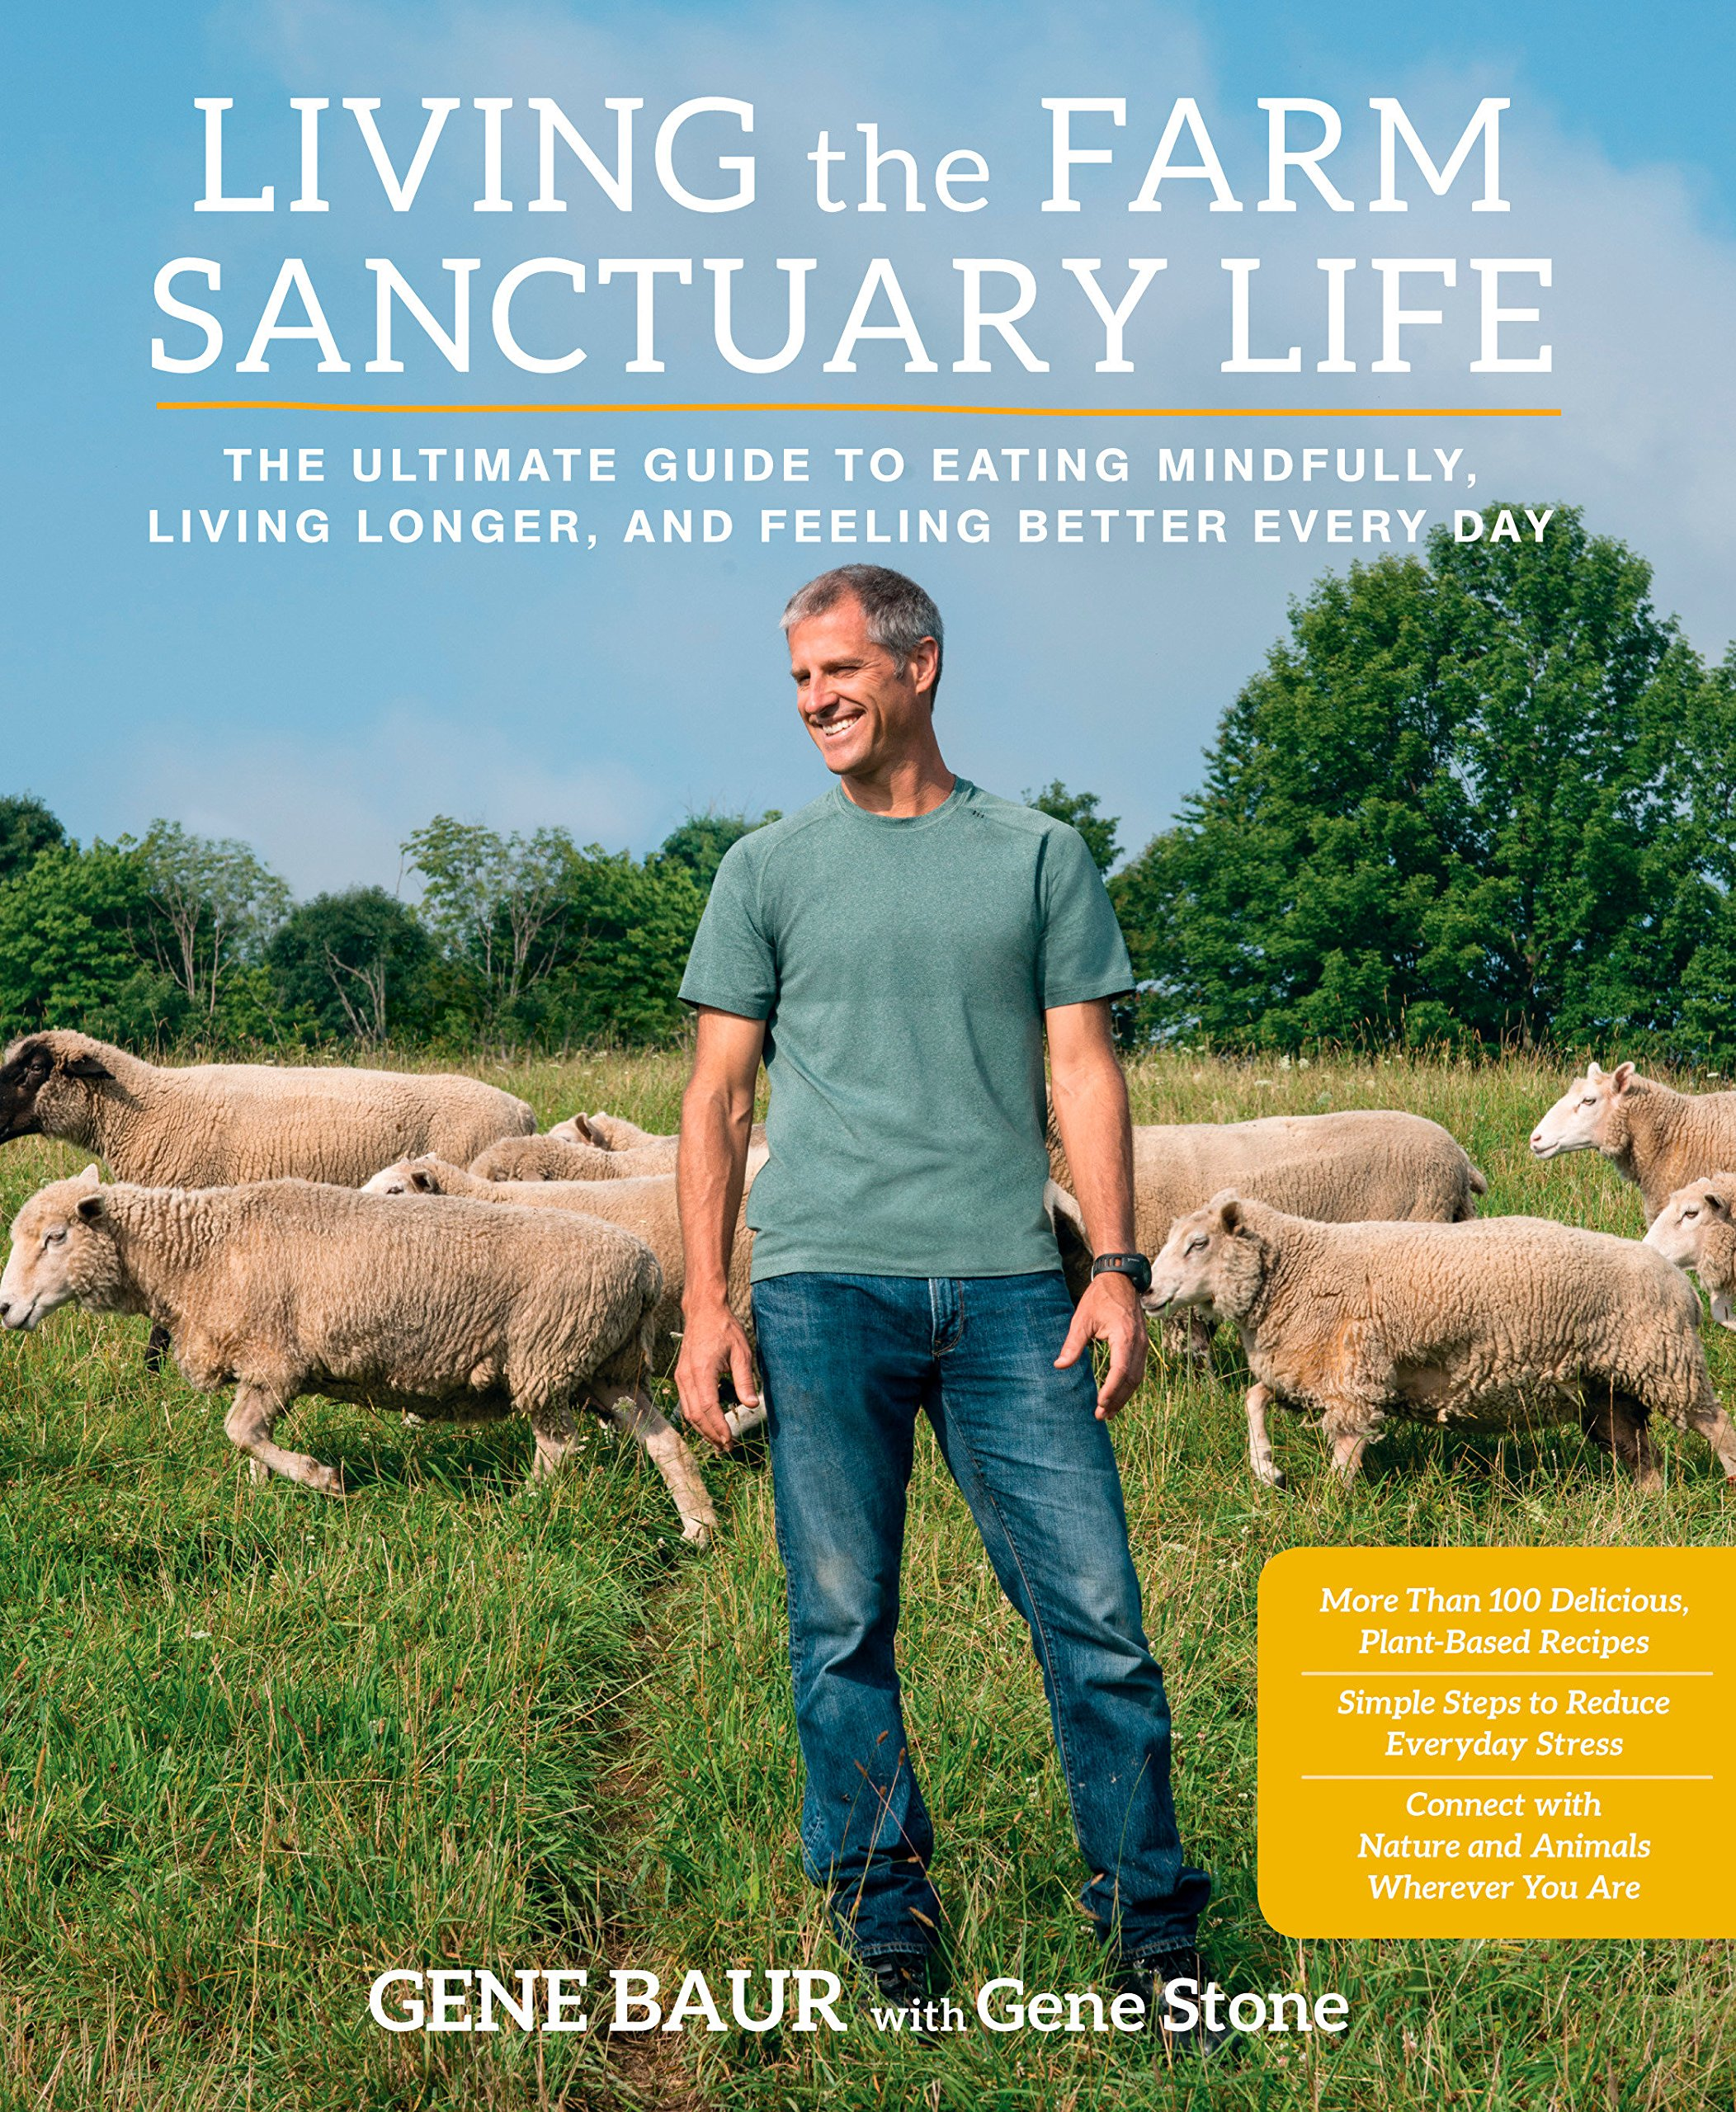 Living the Farm Sanctuary Life: The Ultimate Guide to Eating Mindfully, Living Longer, and Feeling Better Every Day pdf epub